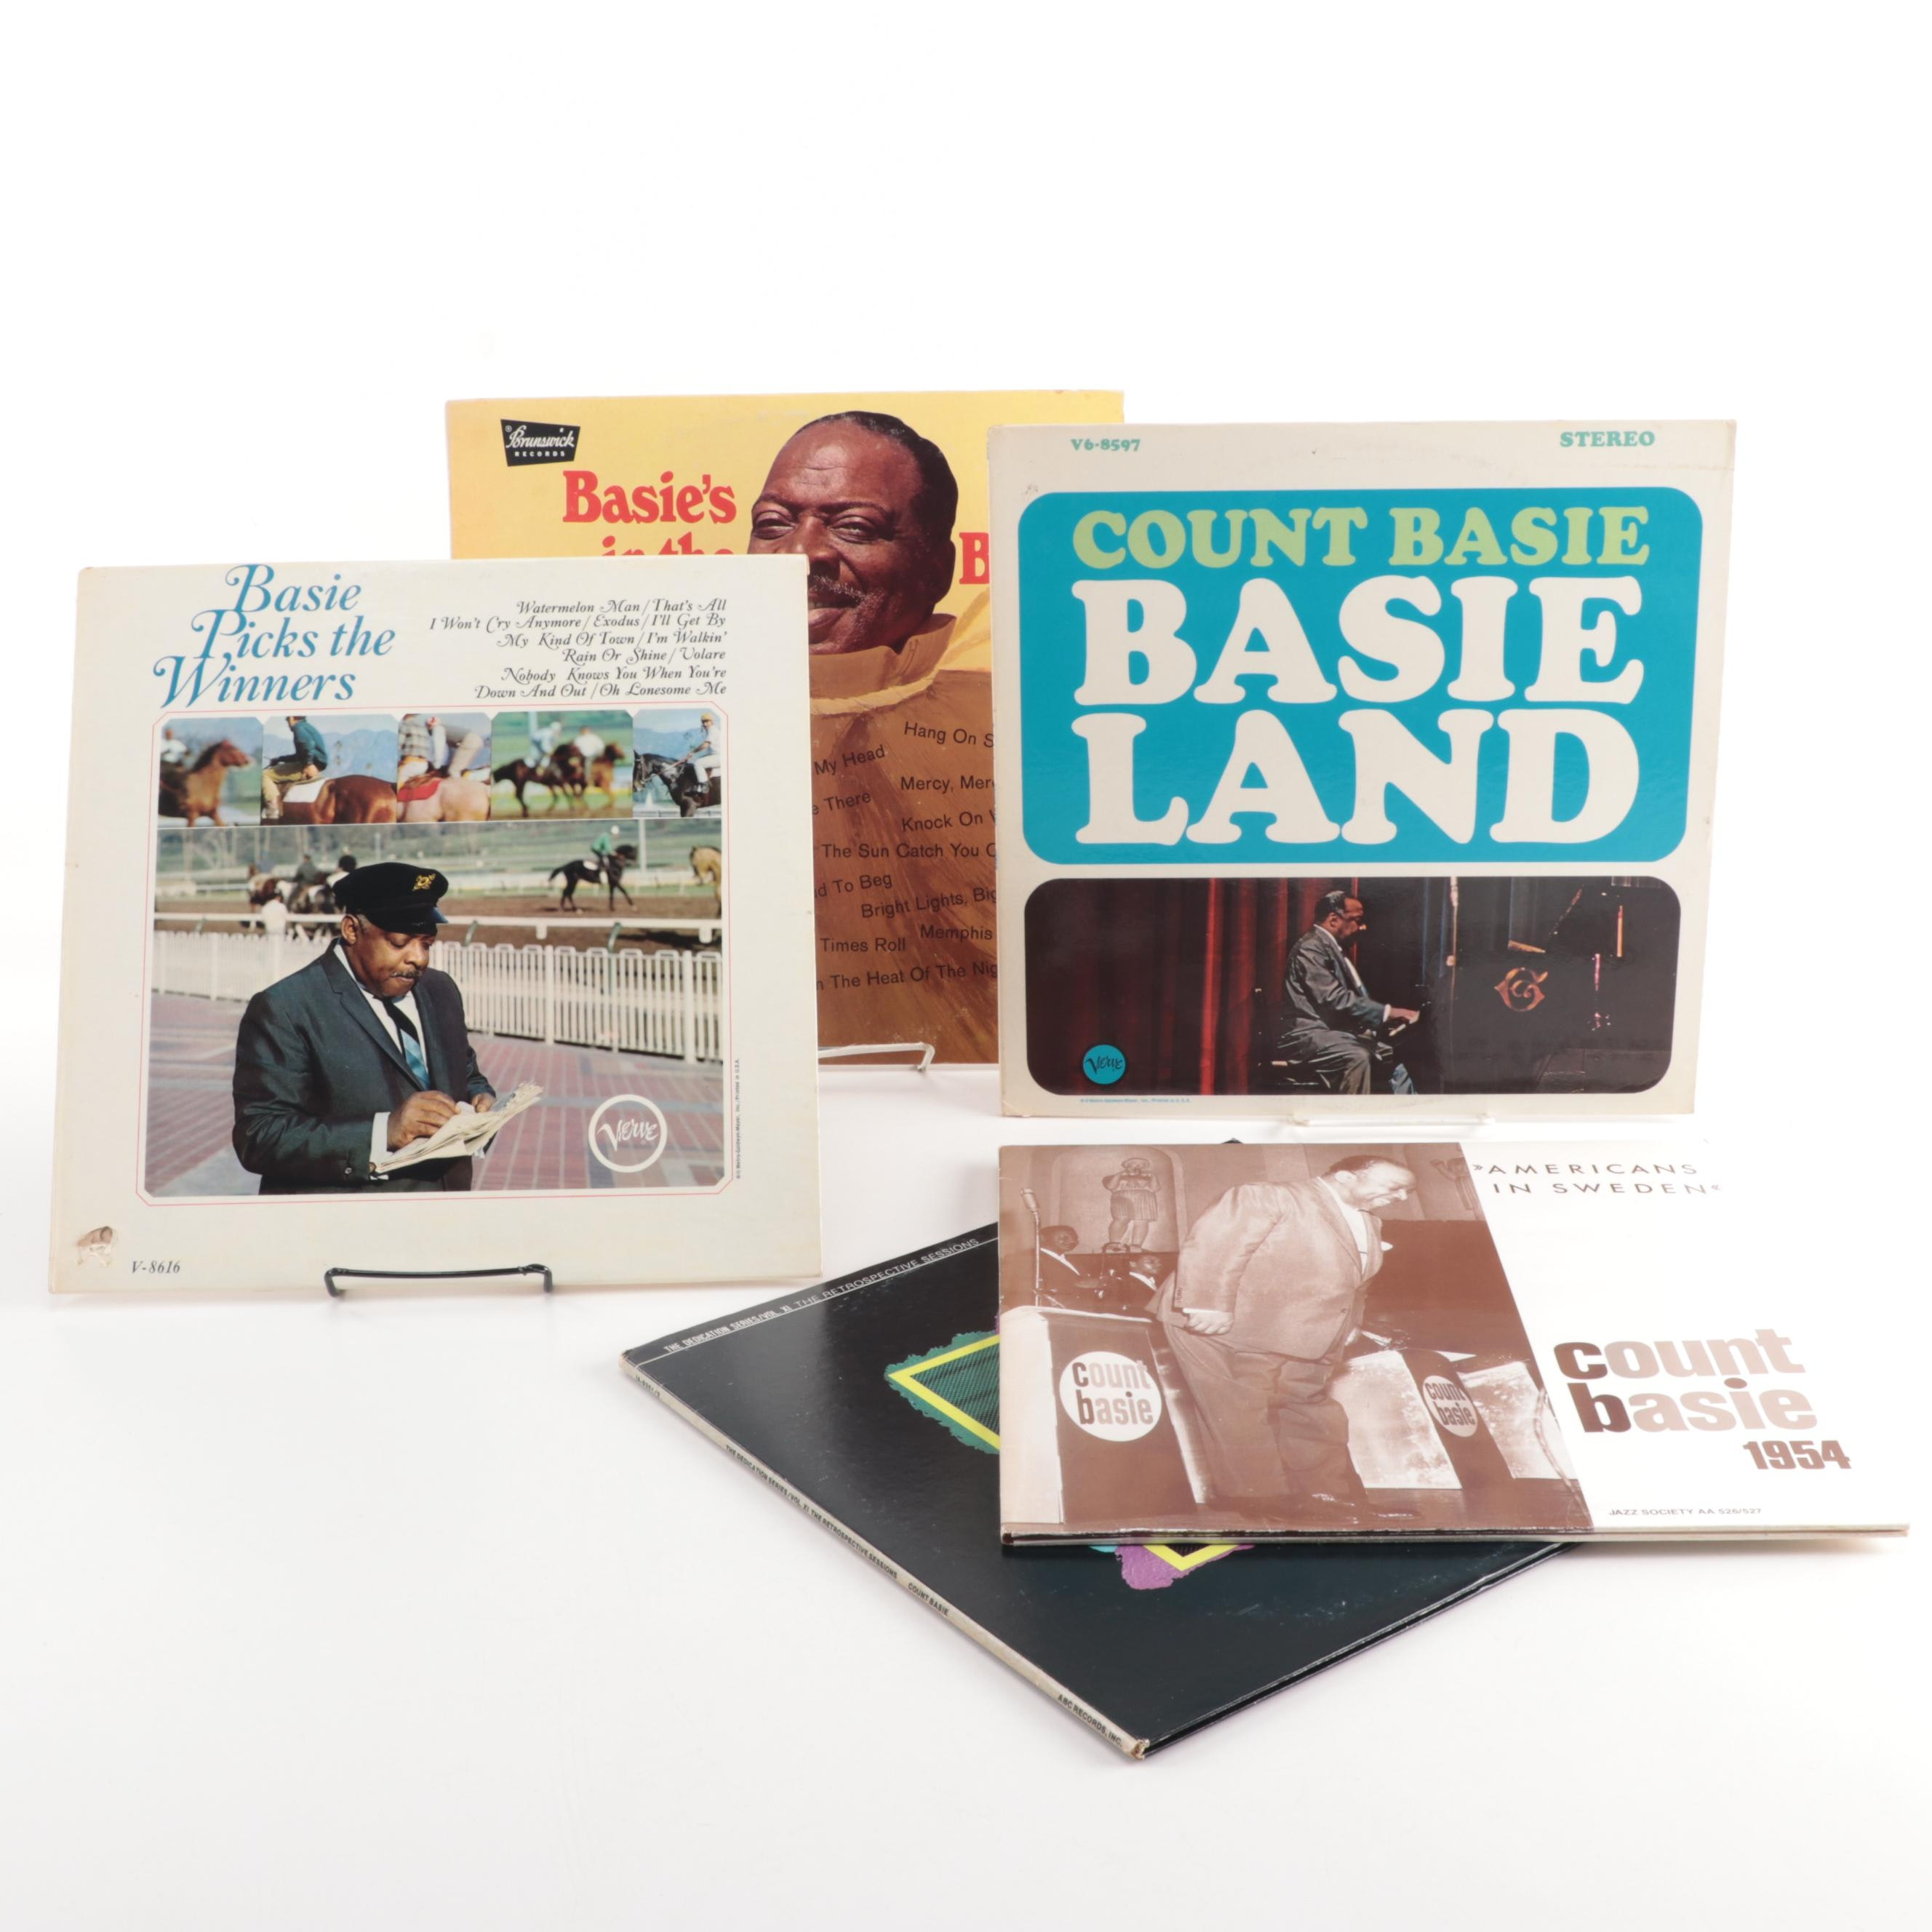 Jazz and Big Band Records featuring Count Basie